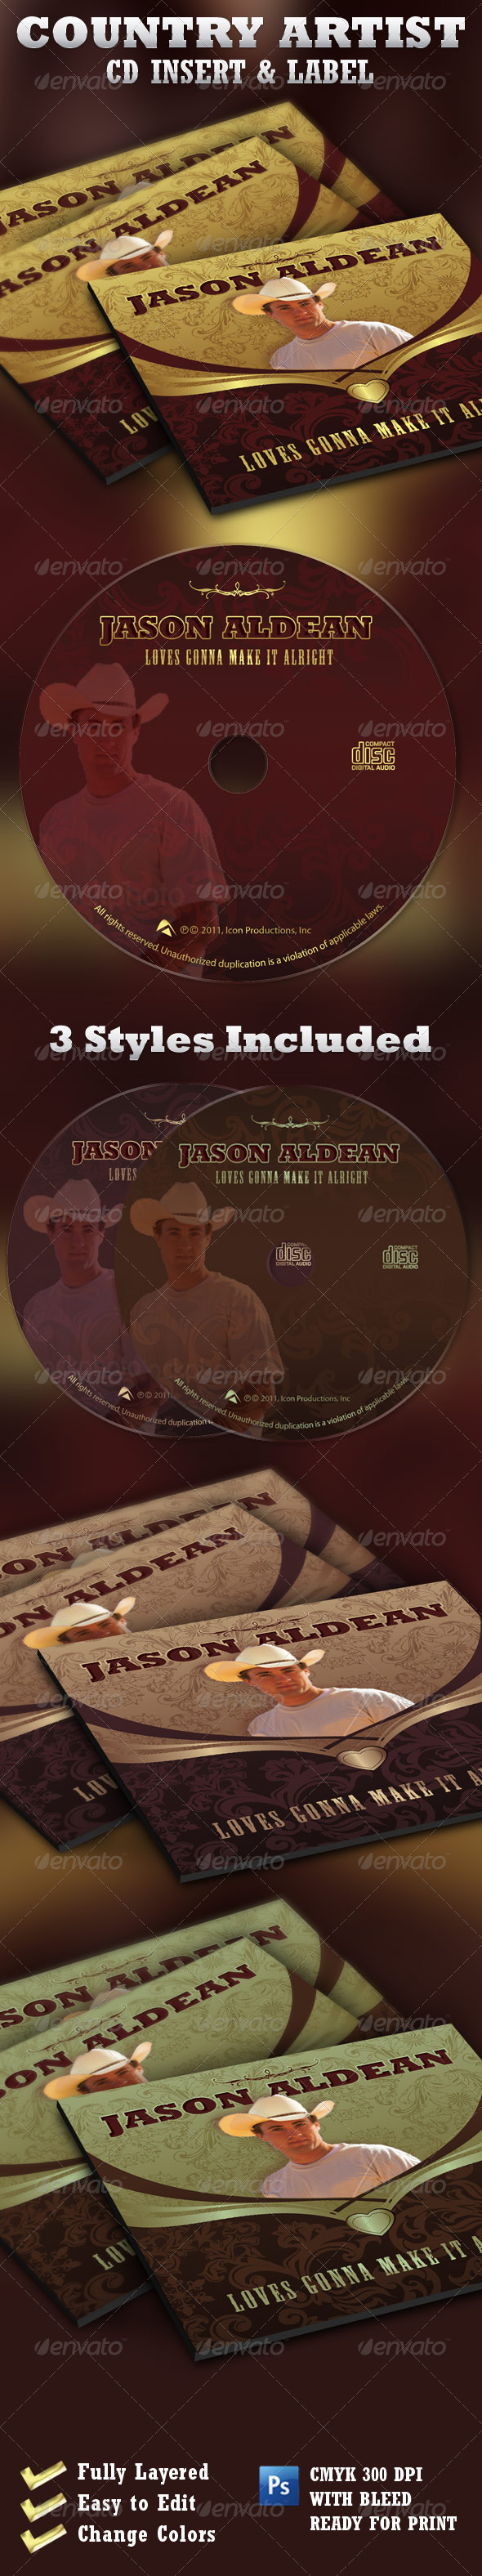 Country Artist CD Label Insert Template - CD & DVD Artwork Print Templates